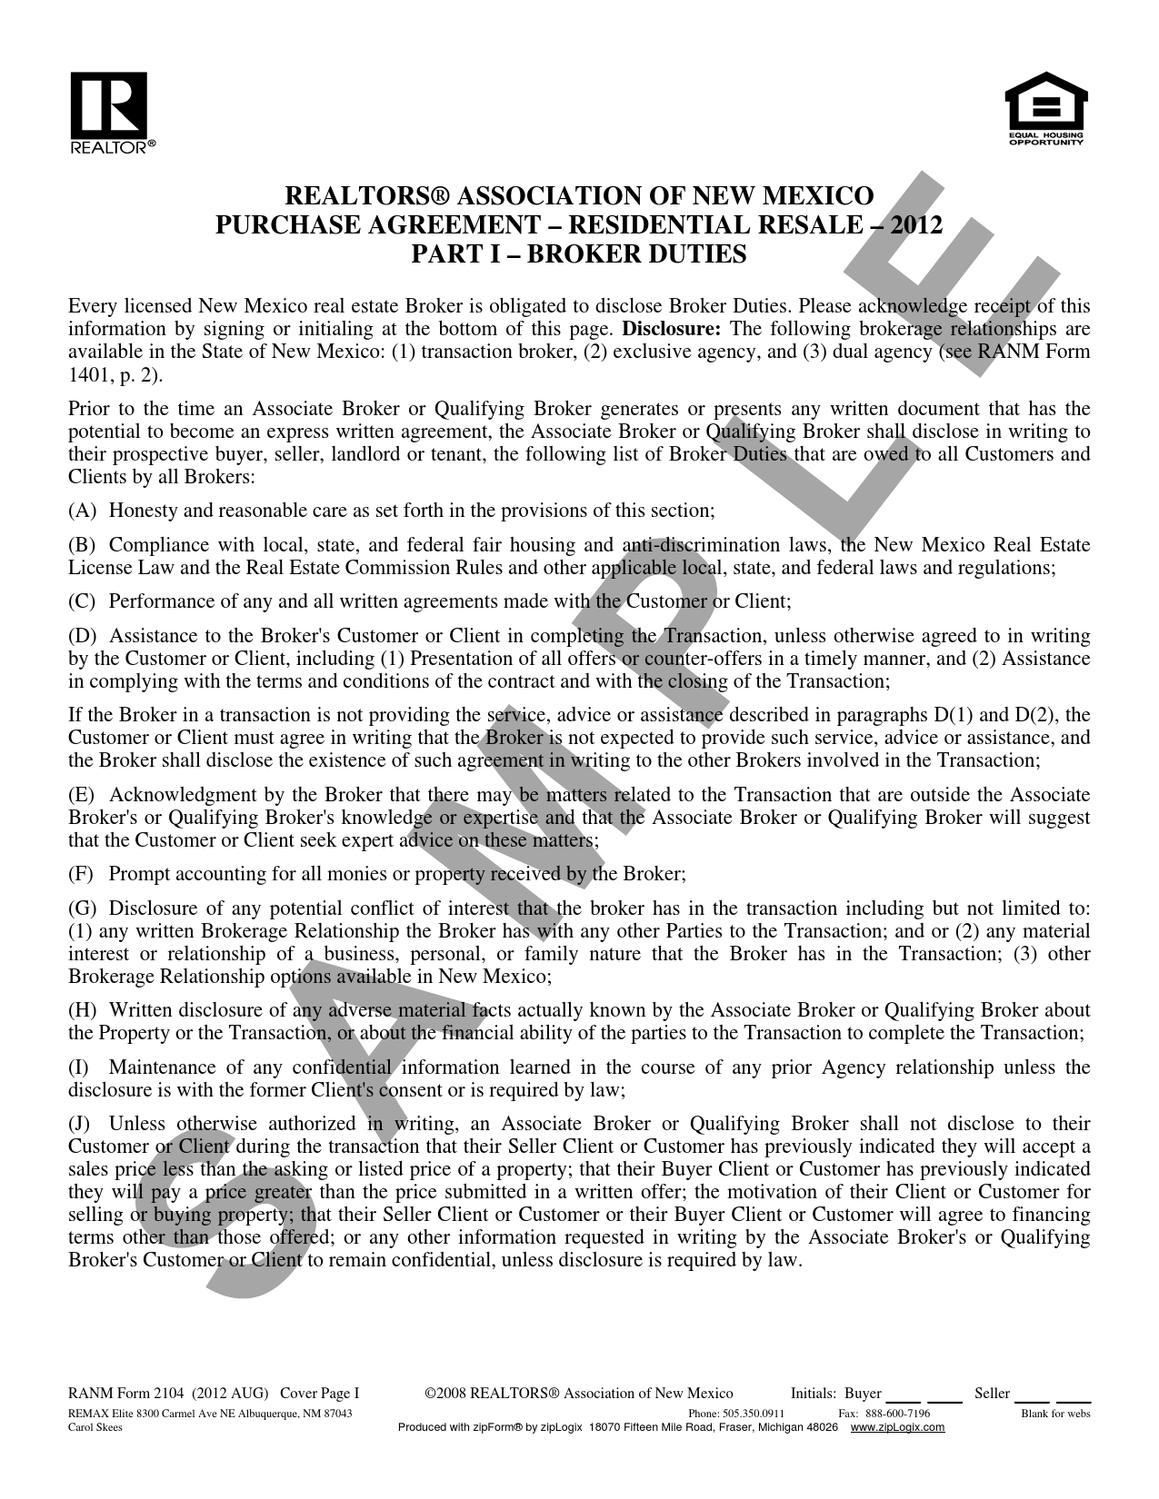 Purchase Agreement Sample For New Mexico By Carol Skees